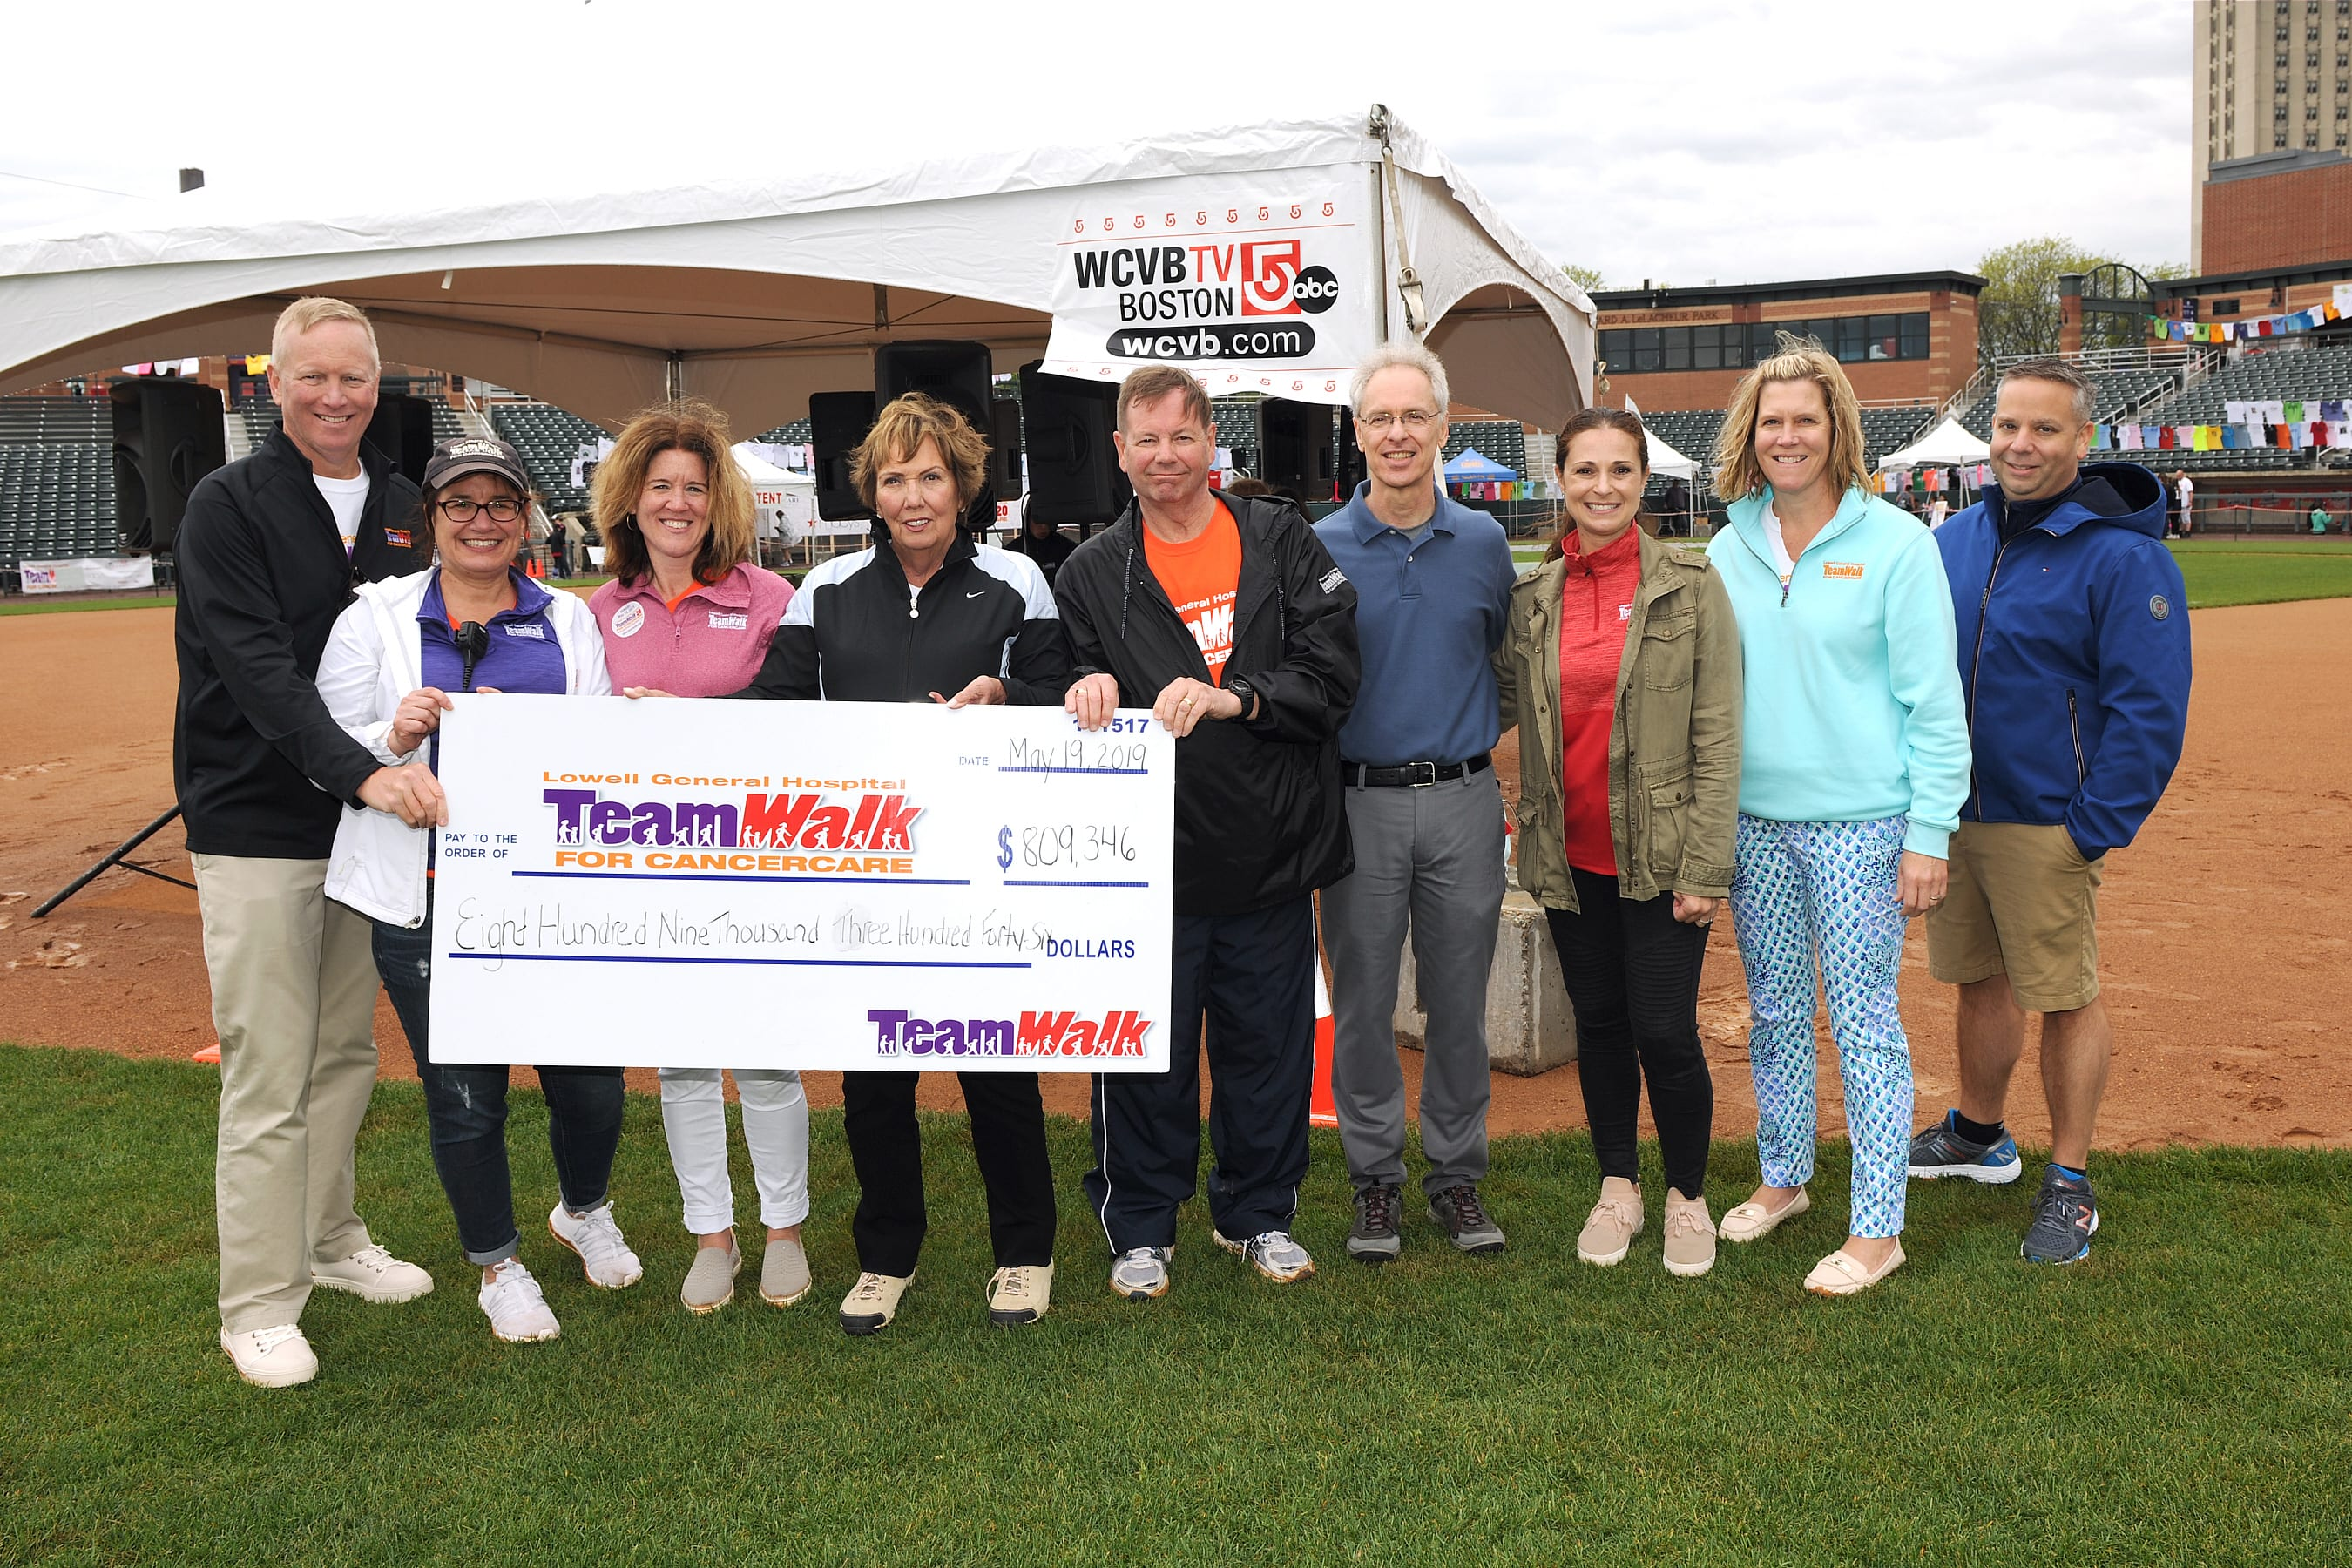 2019 TeamWalk check presentation